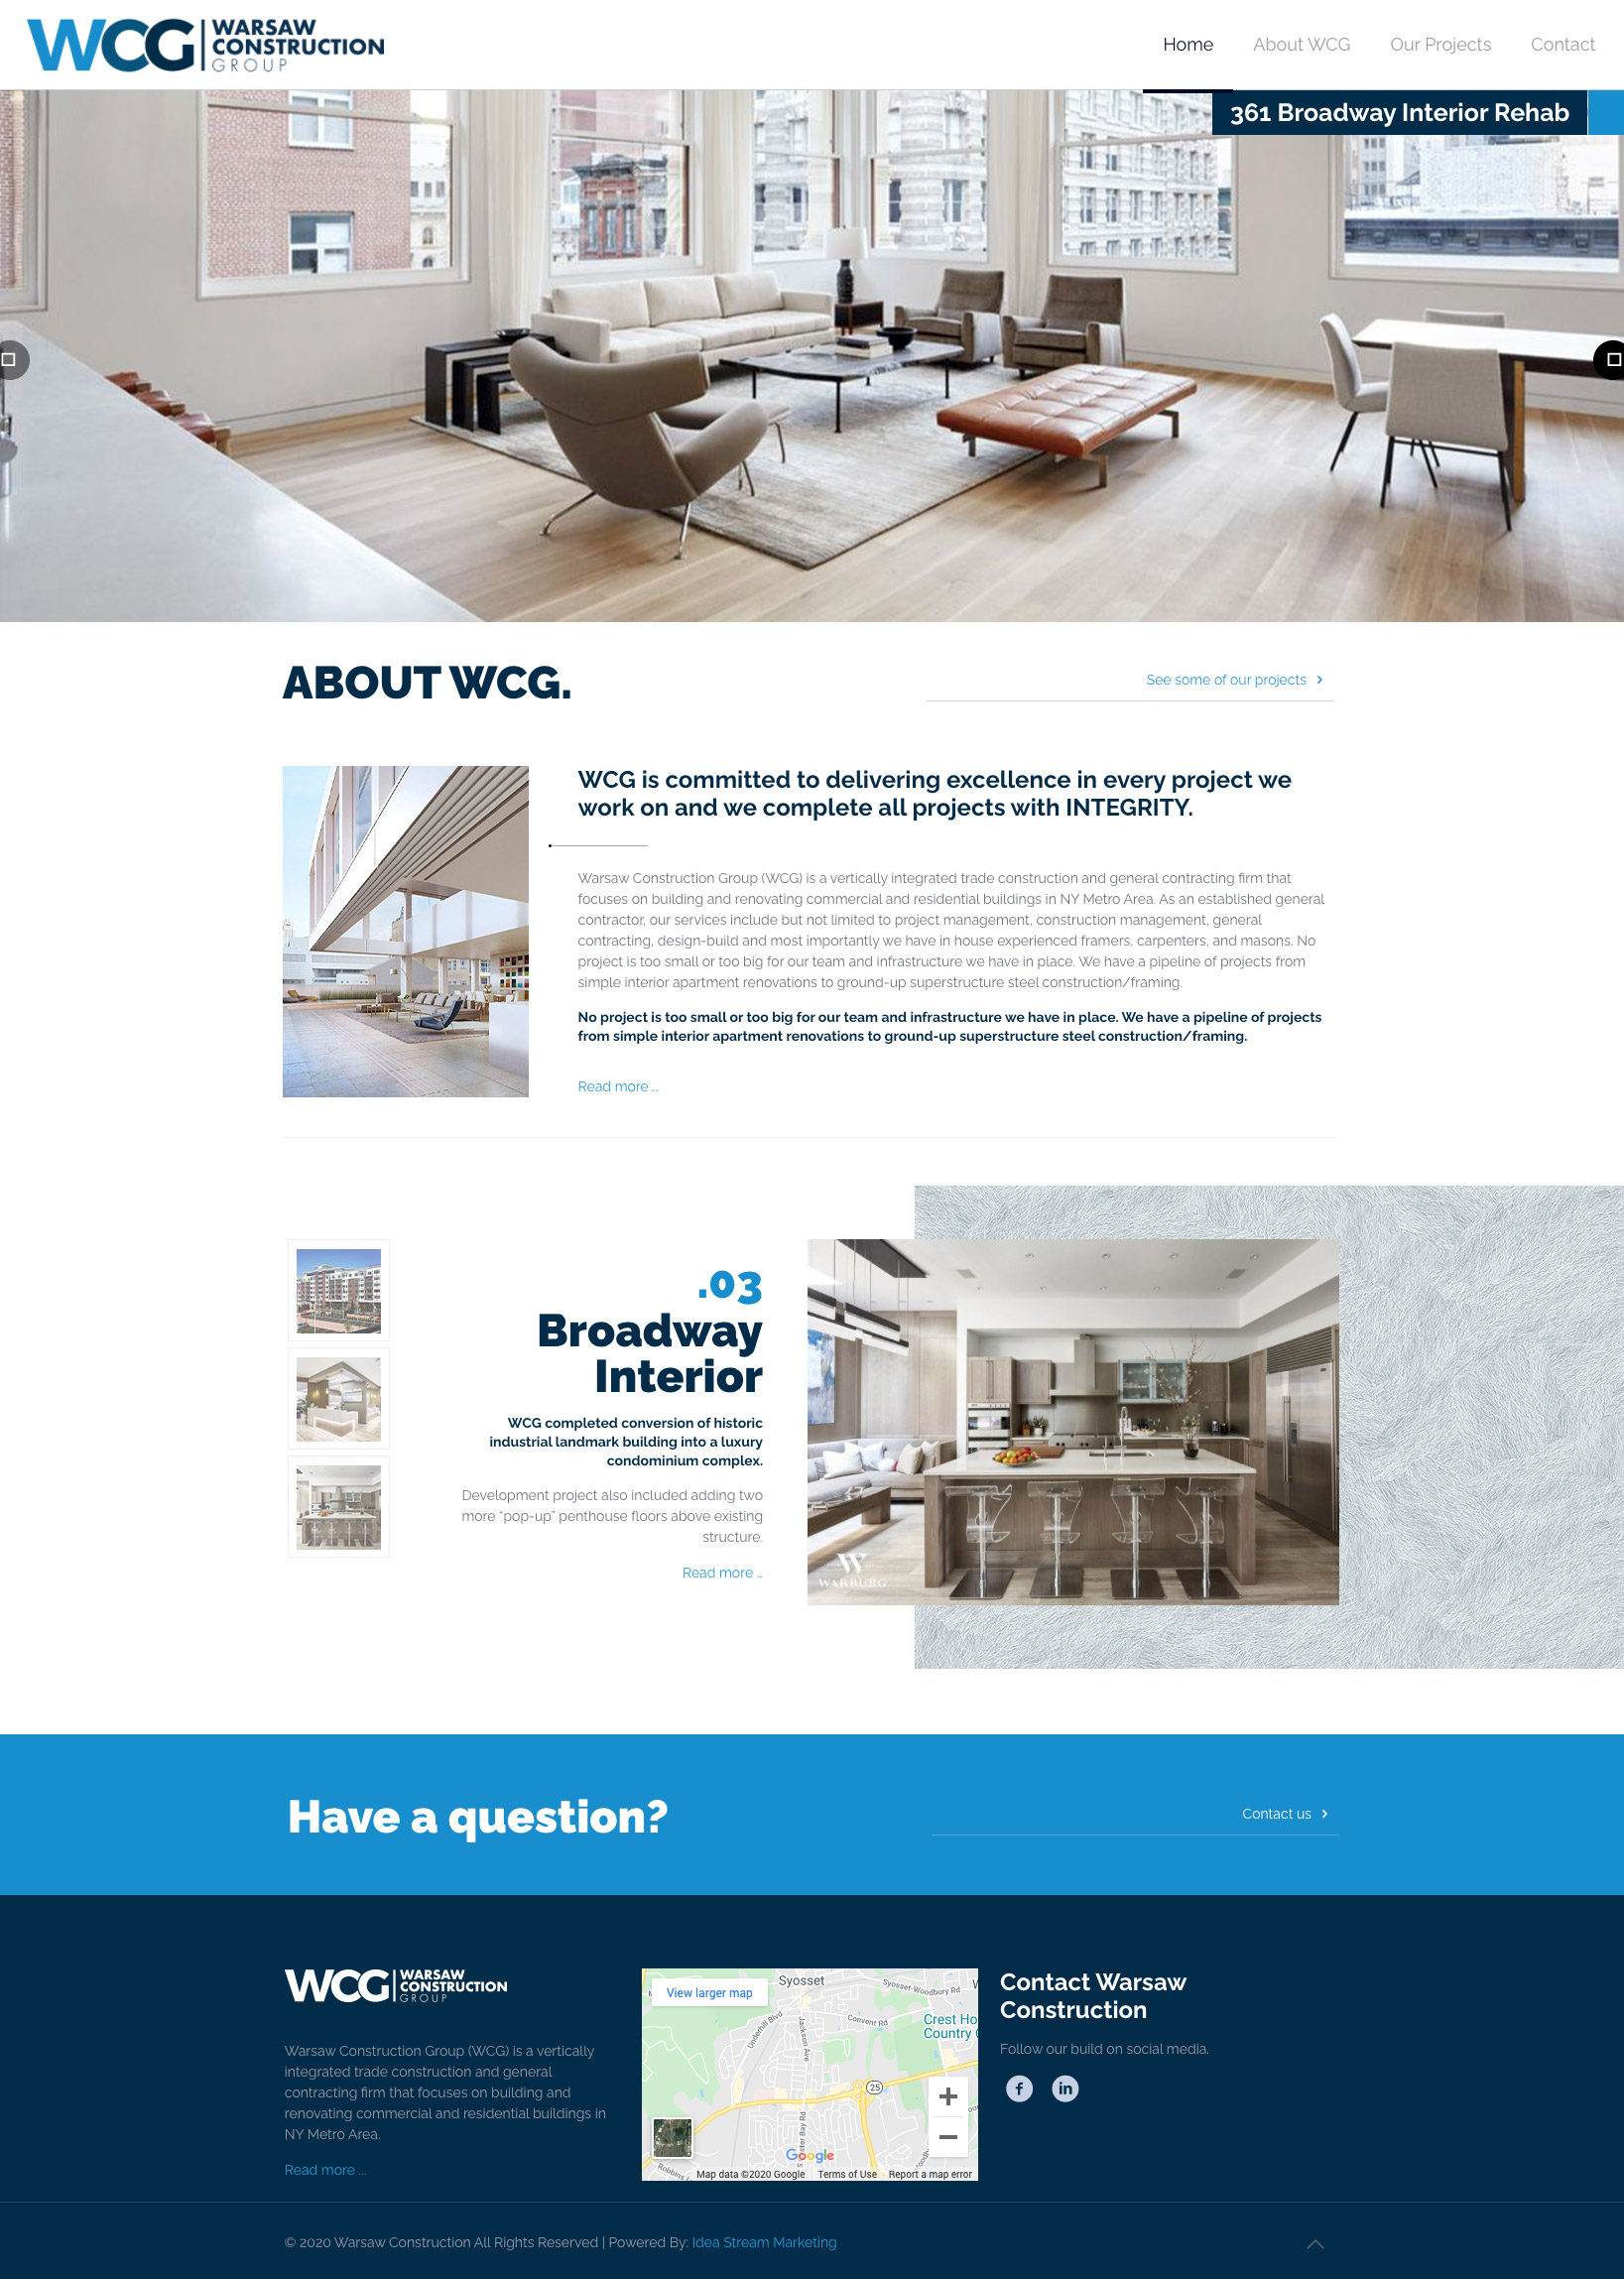 warsaw-construction-group-homepage